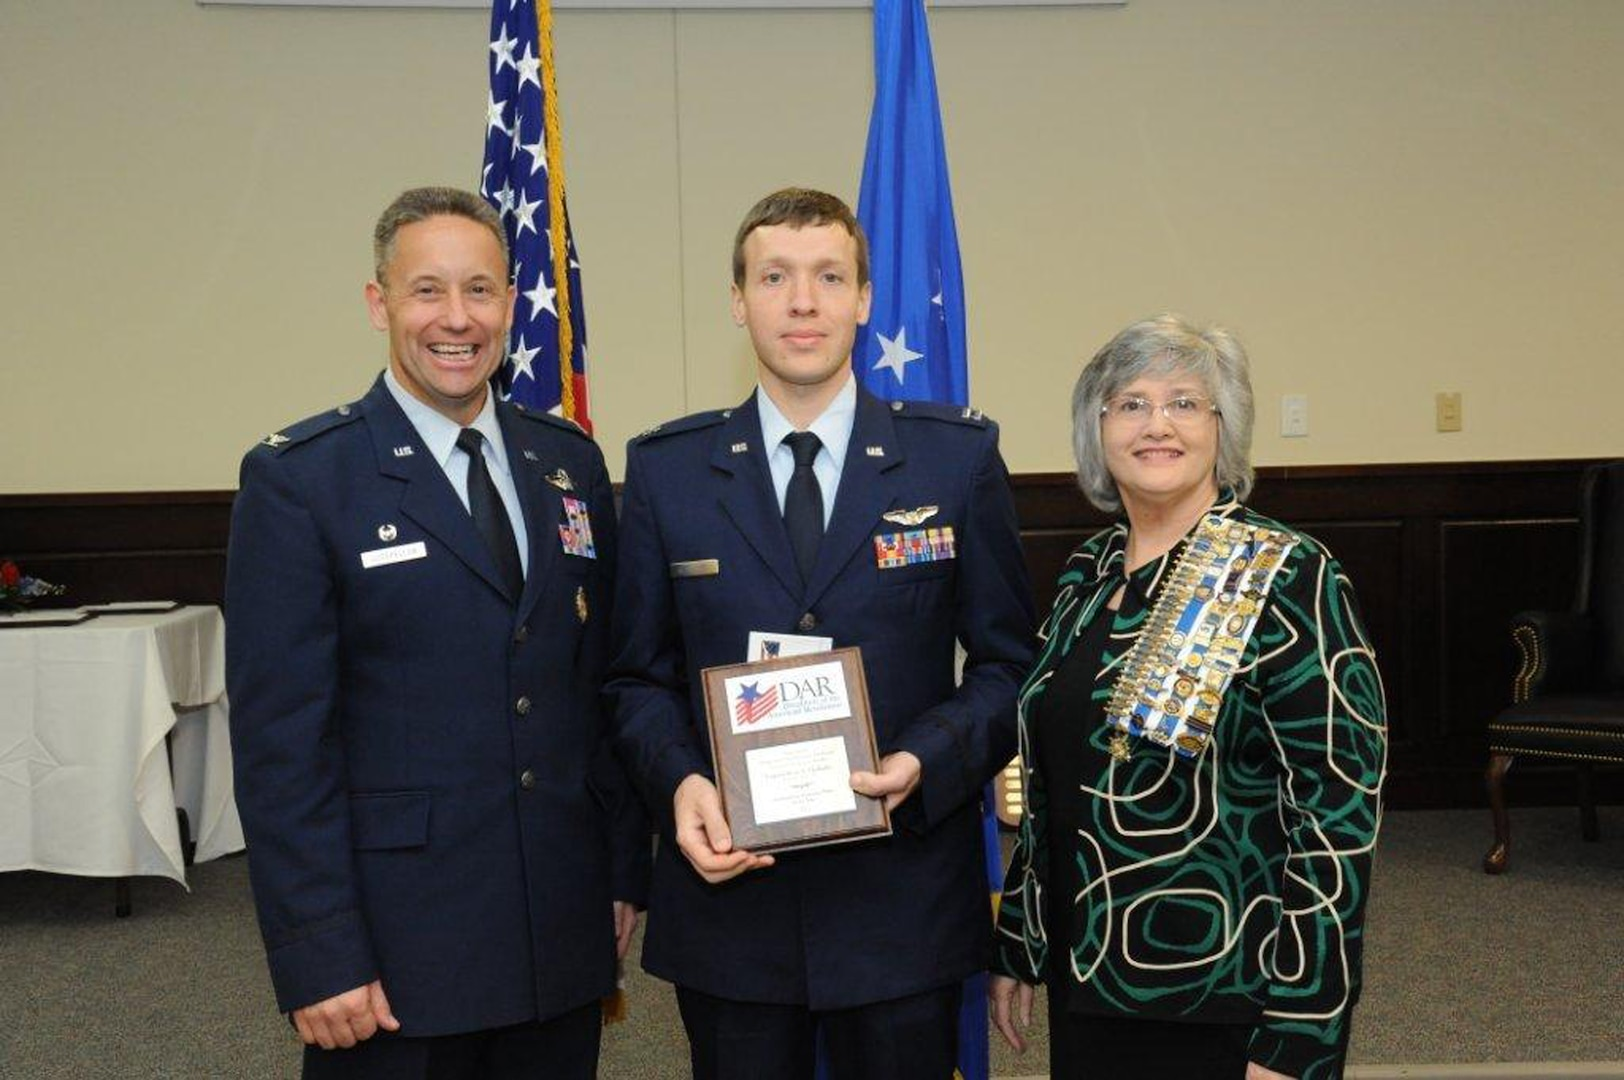 Col. Gerald Goodfellow (left), 12th Flying Training Wing commander, Joint Base San Antonio-Randolph, and Susan Green Tillman (center right), State Recording Secretary of Texas, Daughters of the American Revolution, present Capt. Brian Thalhofer with the Instructor Pilot of the Year Award. (U.S. Air Force photo by Rich McFadden)